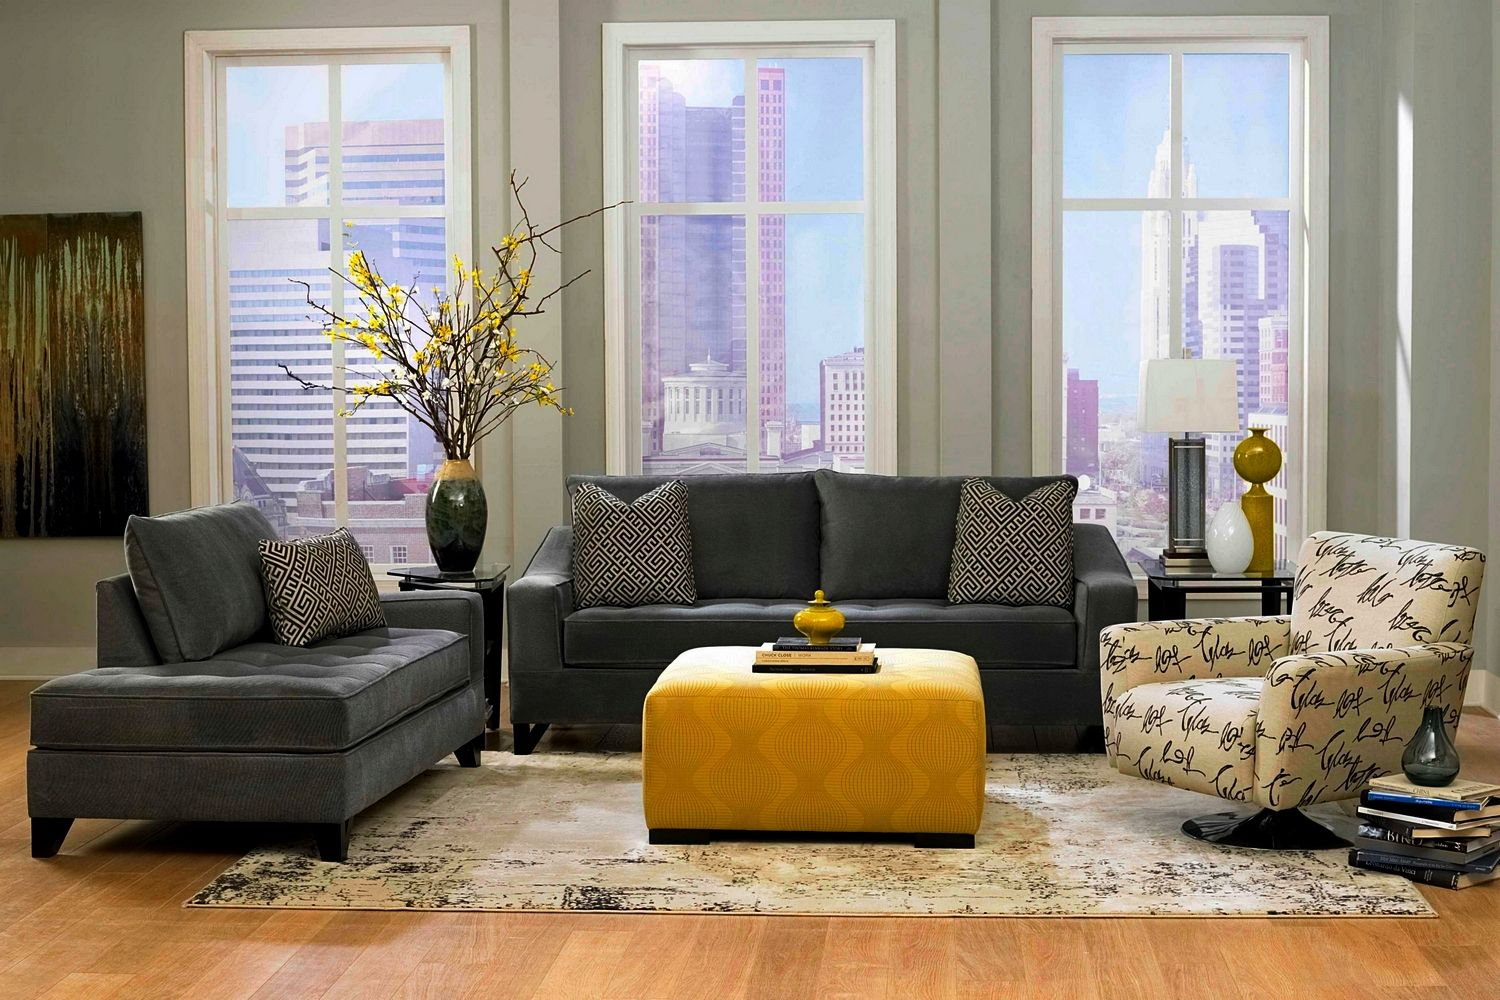 Gray Leather Sofa In Living Room With Yellow Ottoman Living Room